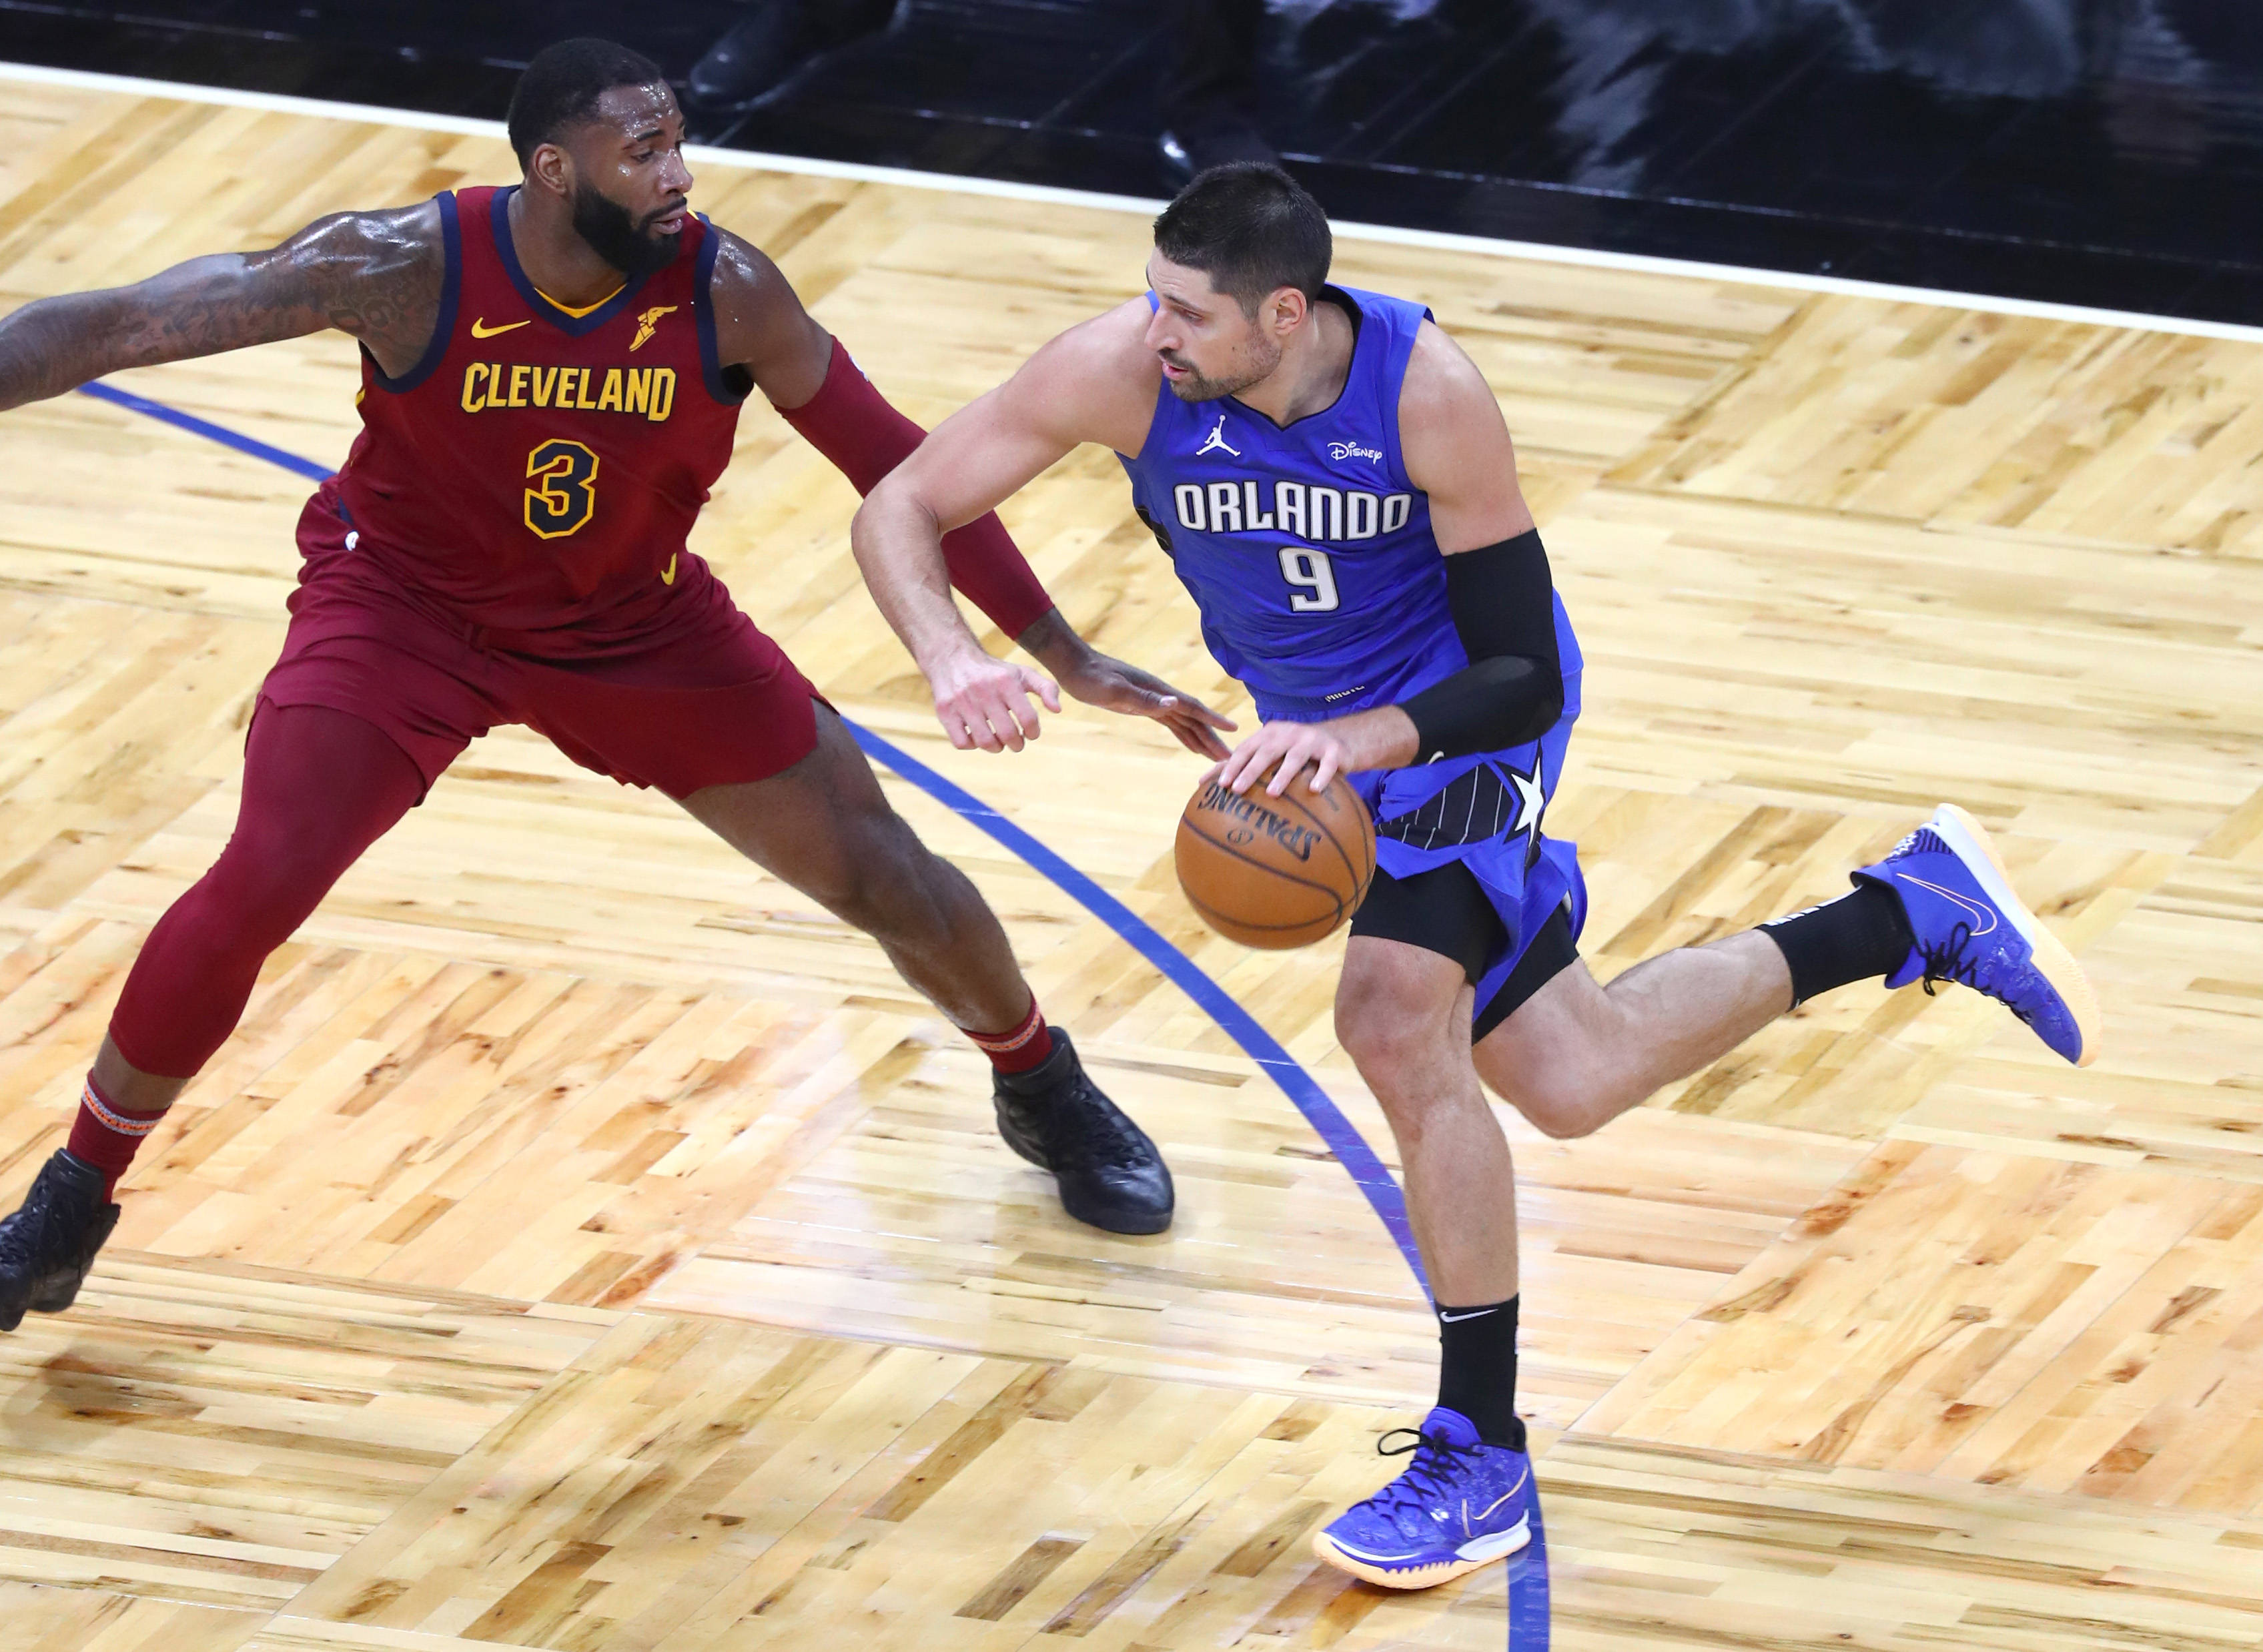 Jan 6, 2021; Orlando, Florida, USA; Orlando Magic center Nikola Vucevic (9) drives to the basket as Cleveland Cavaliers center Andre Drummond (3) defends during the first quarter at Amway Center.